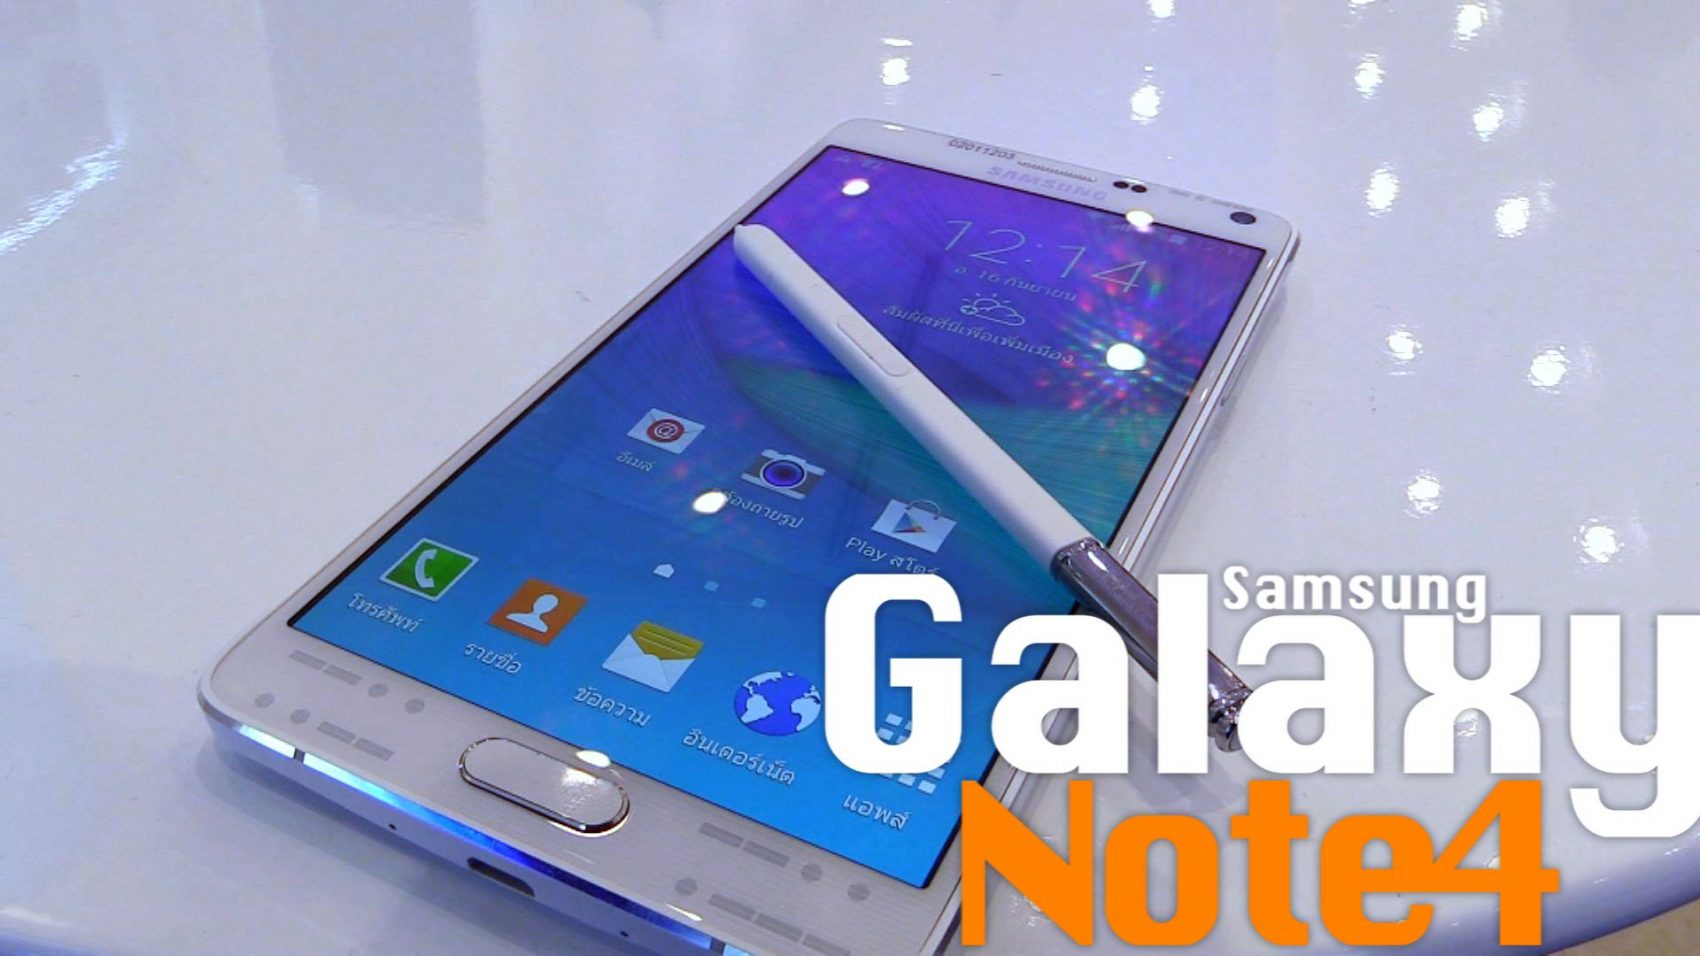 Power ON Special : Samsung Galxy Note 4